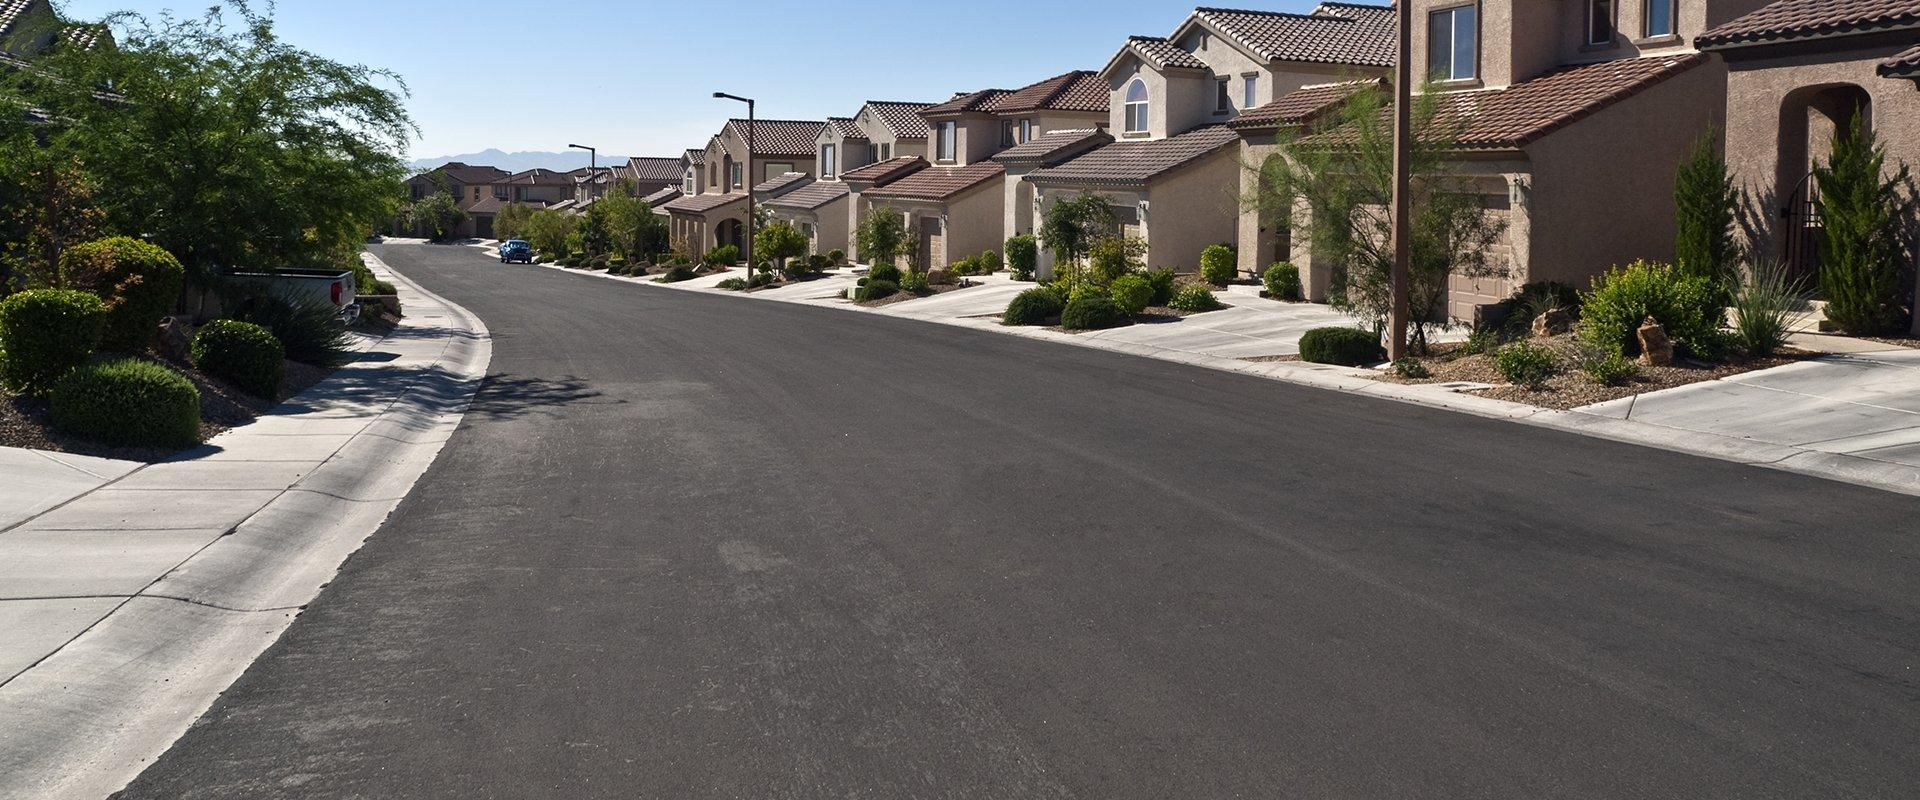 houses along a street in henderson nevada